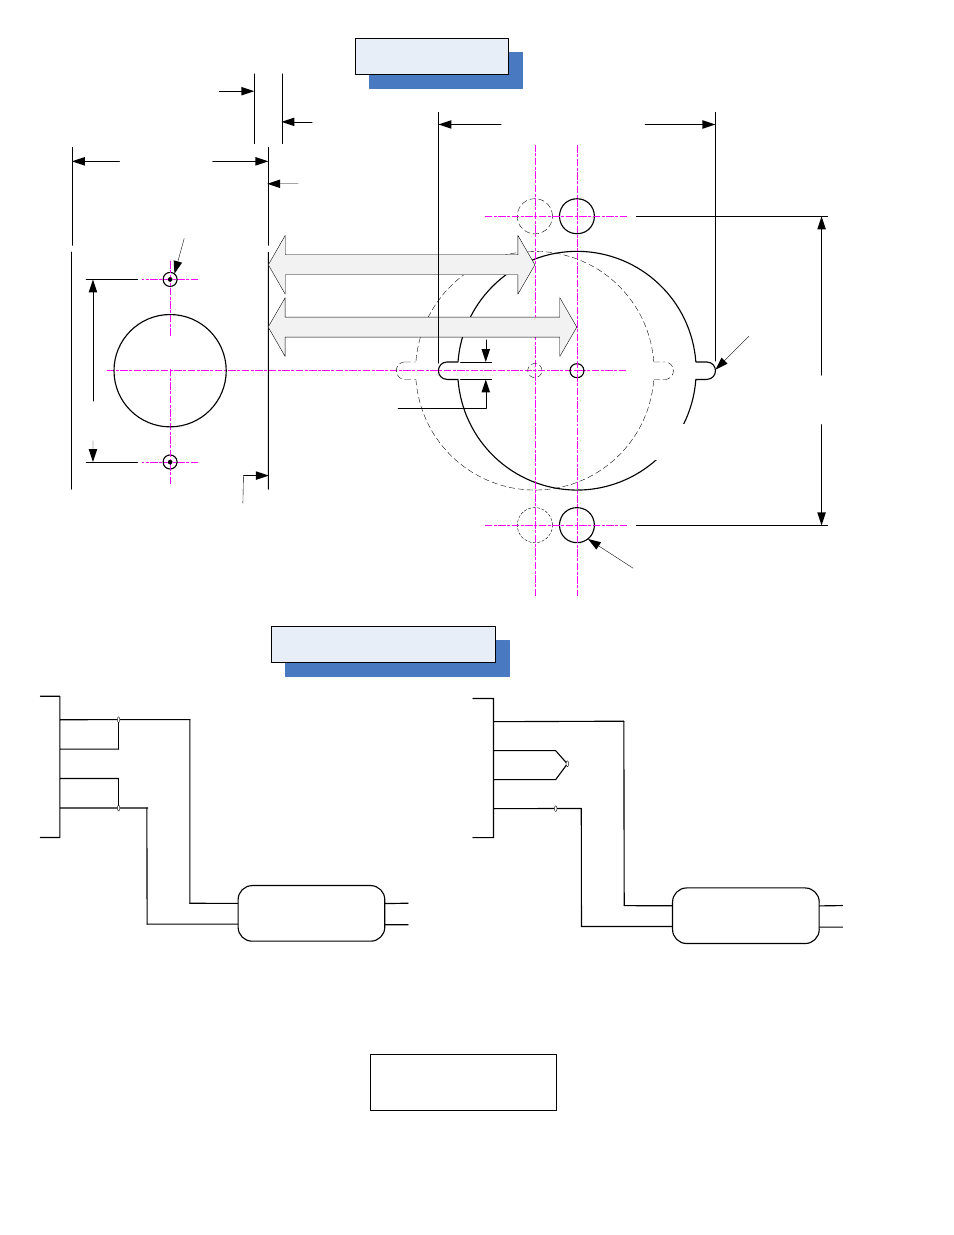 Wire Diagram  Layout  12vdc    6amp